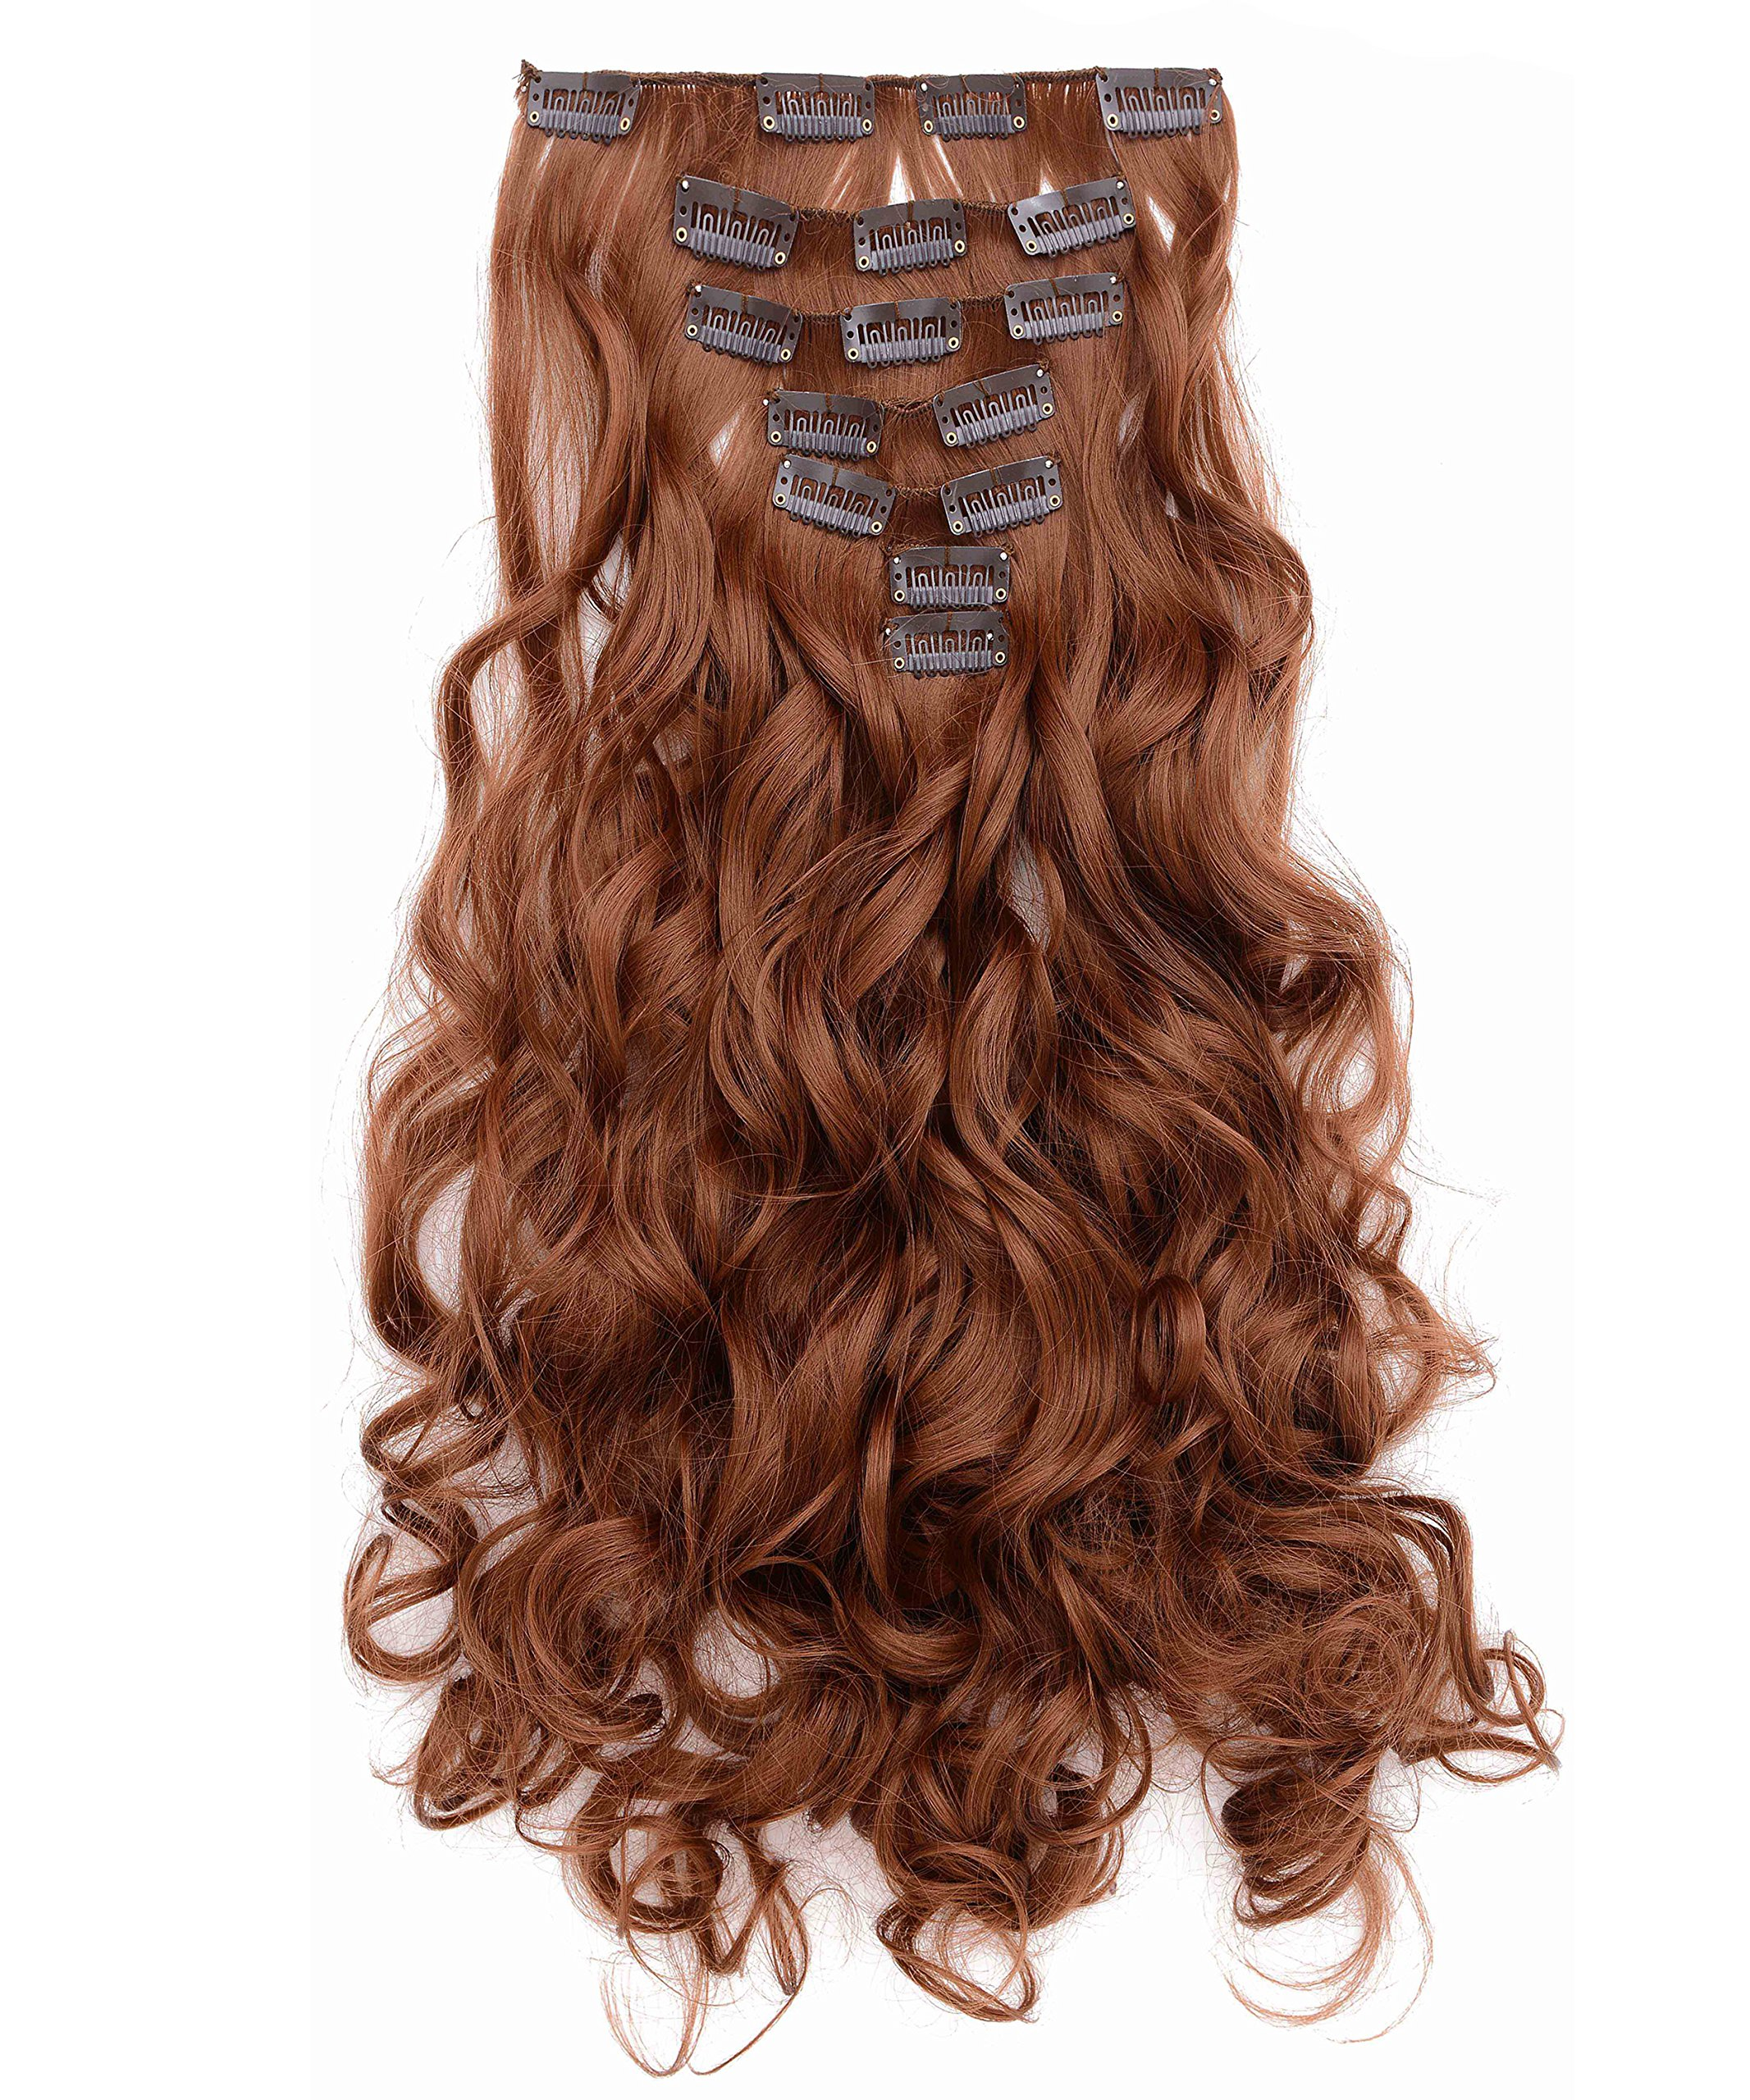 "OneDor 20"" Curly Full Head Clip in Synthetic Hair Extensions 7pcs 140g (Medium Auburn-30#)"